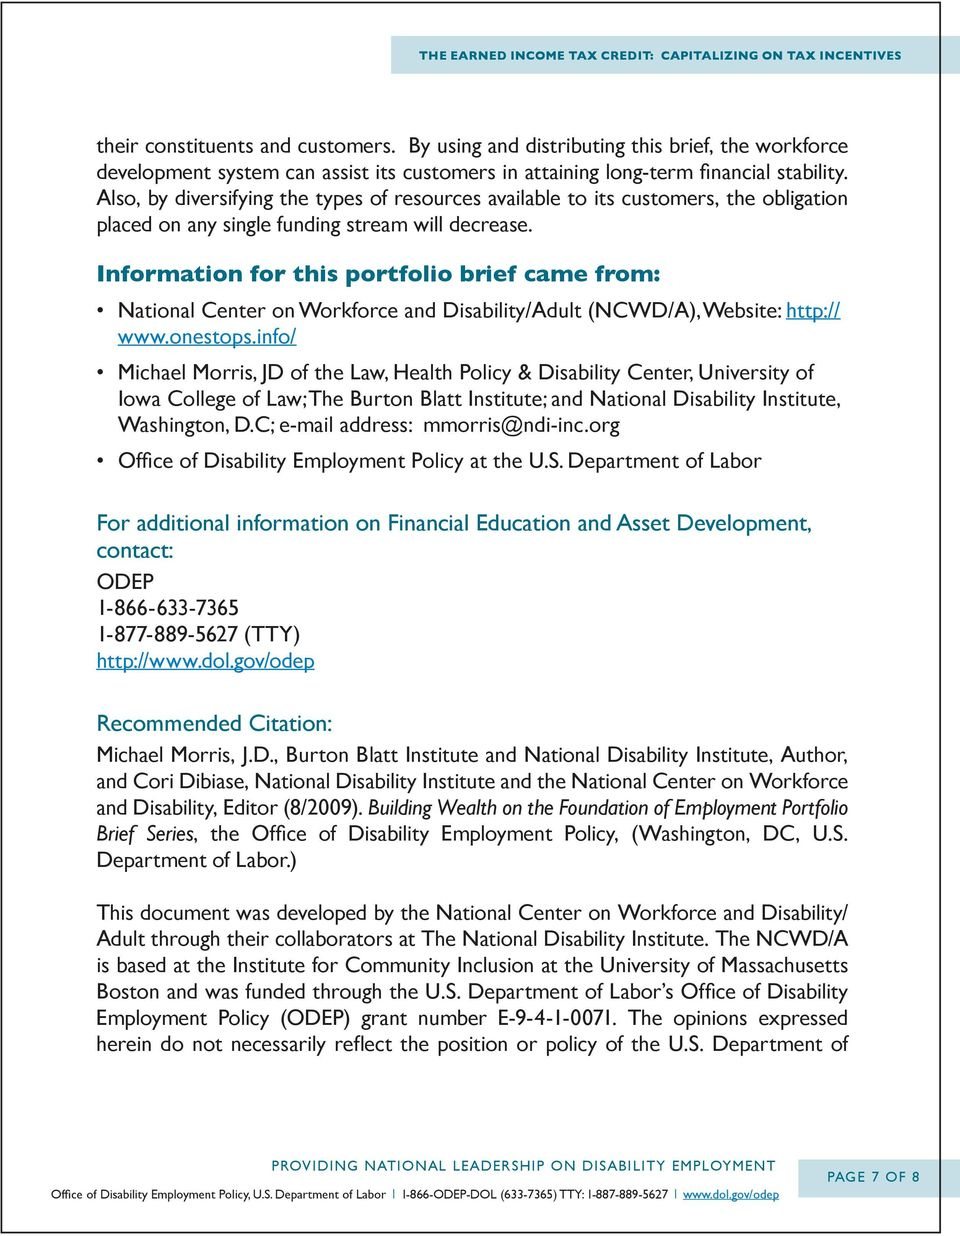 Information for this portfolio brief came from: national Center on Workforce and disability/adult (ncwd/a), Website: http:// www.onestops.